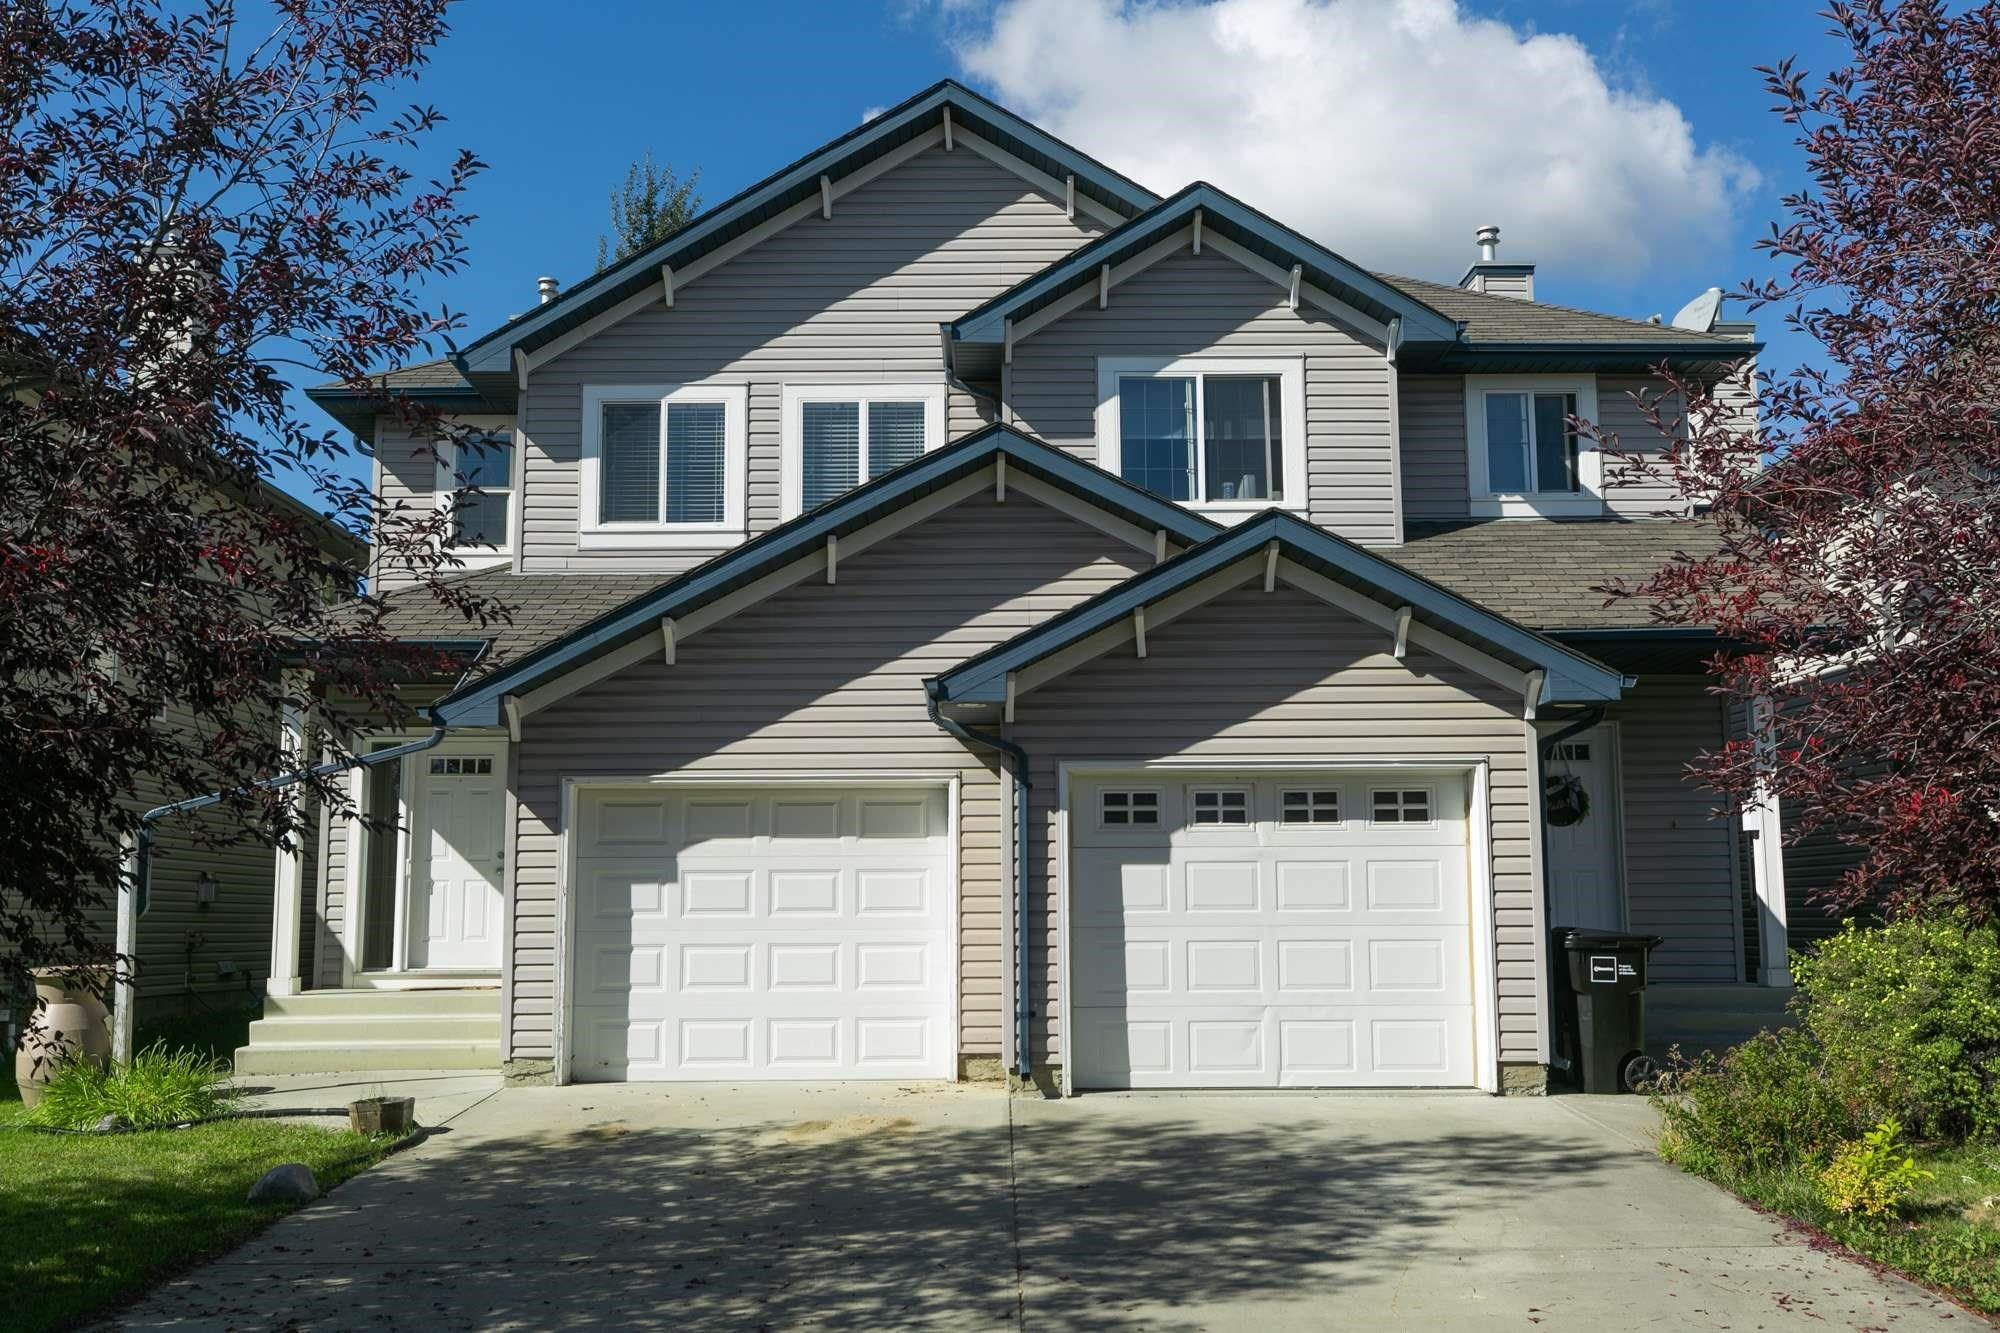 Main Photo: 1887 RUTHERFORD Road in Edmonton: Zone 55 House Half Duplex for sale : MLS®# E4262620